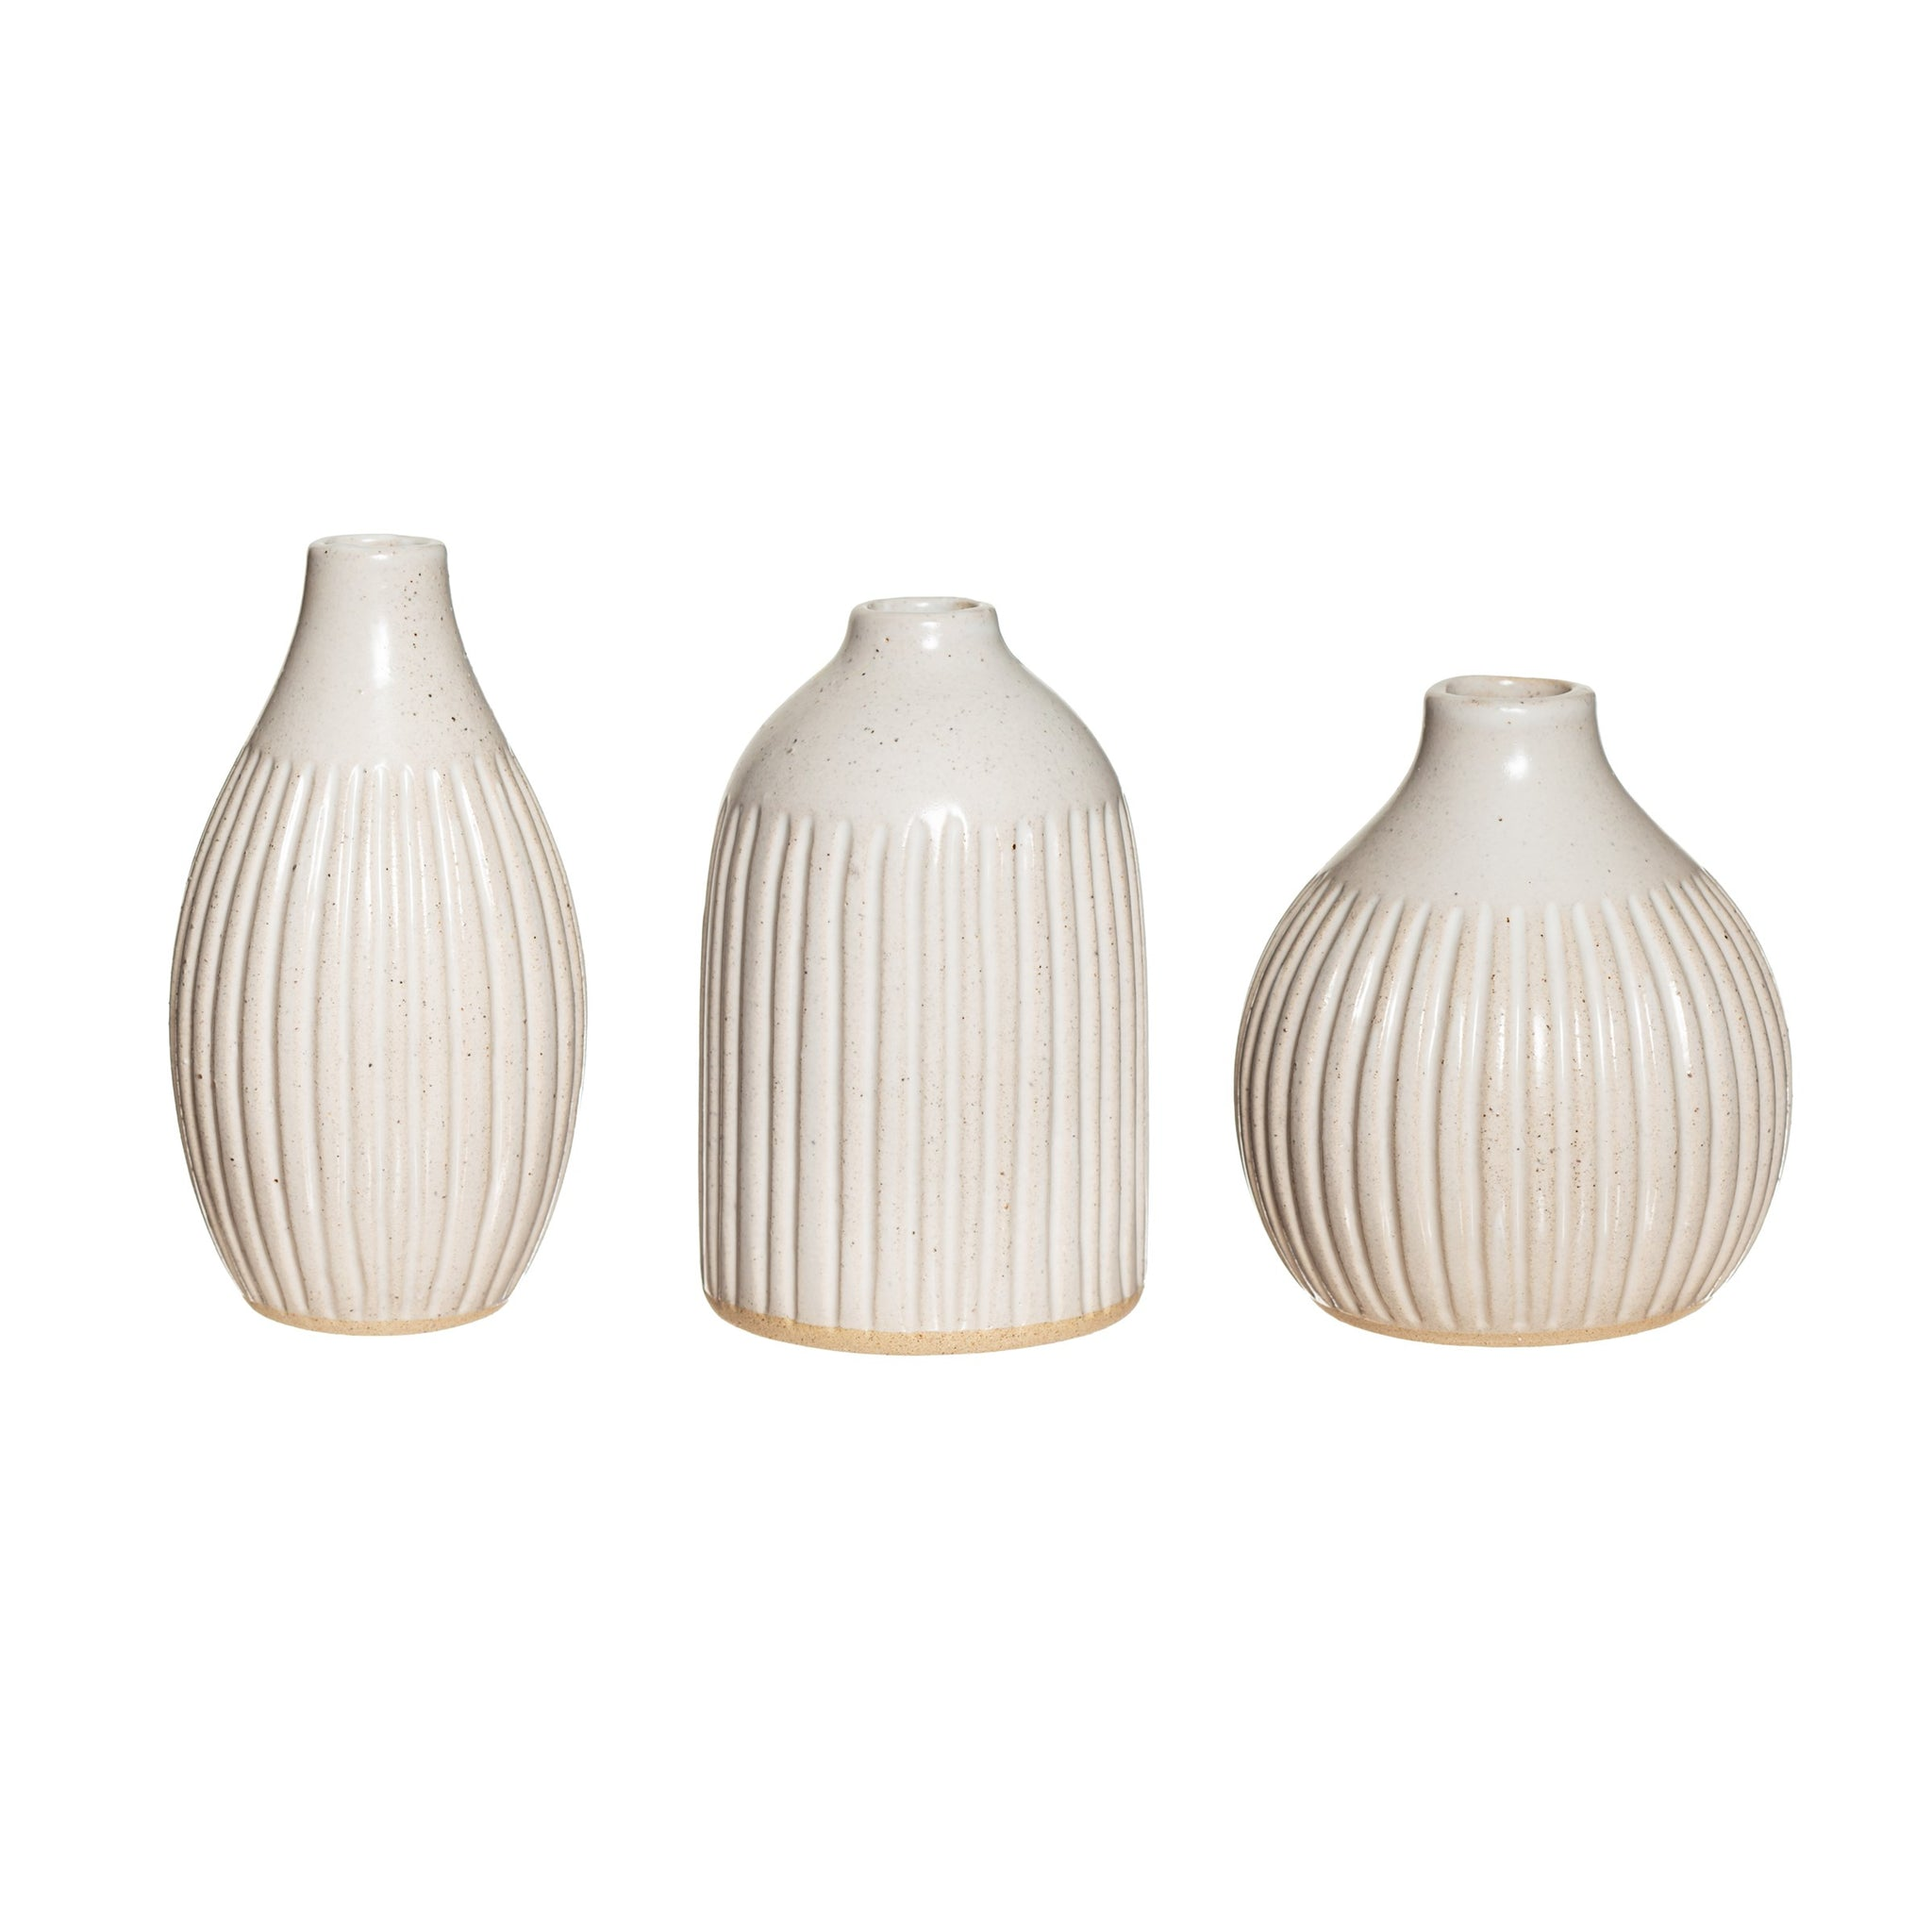 Grooved Bud Vases Set of 3